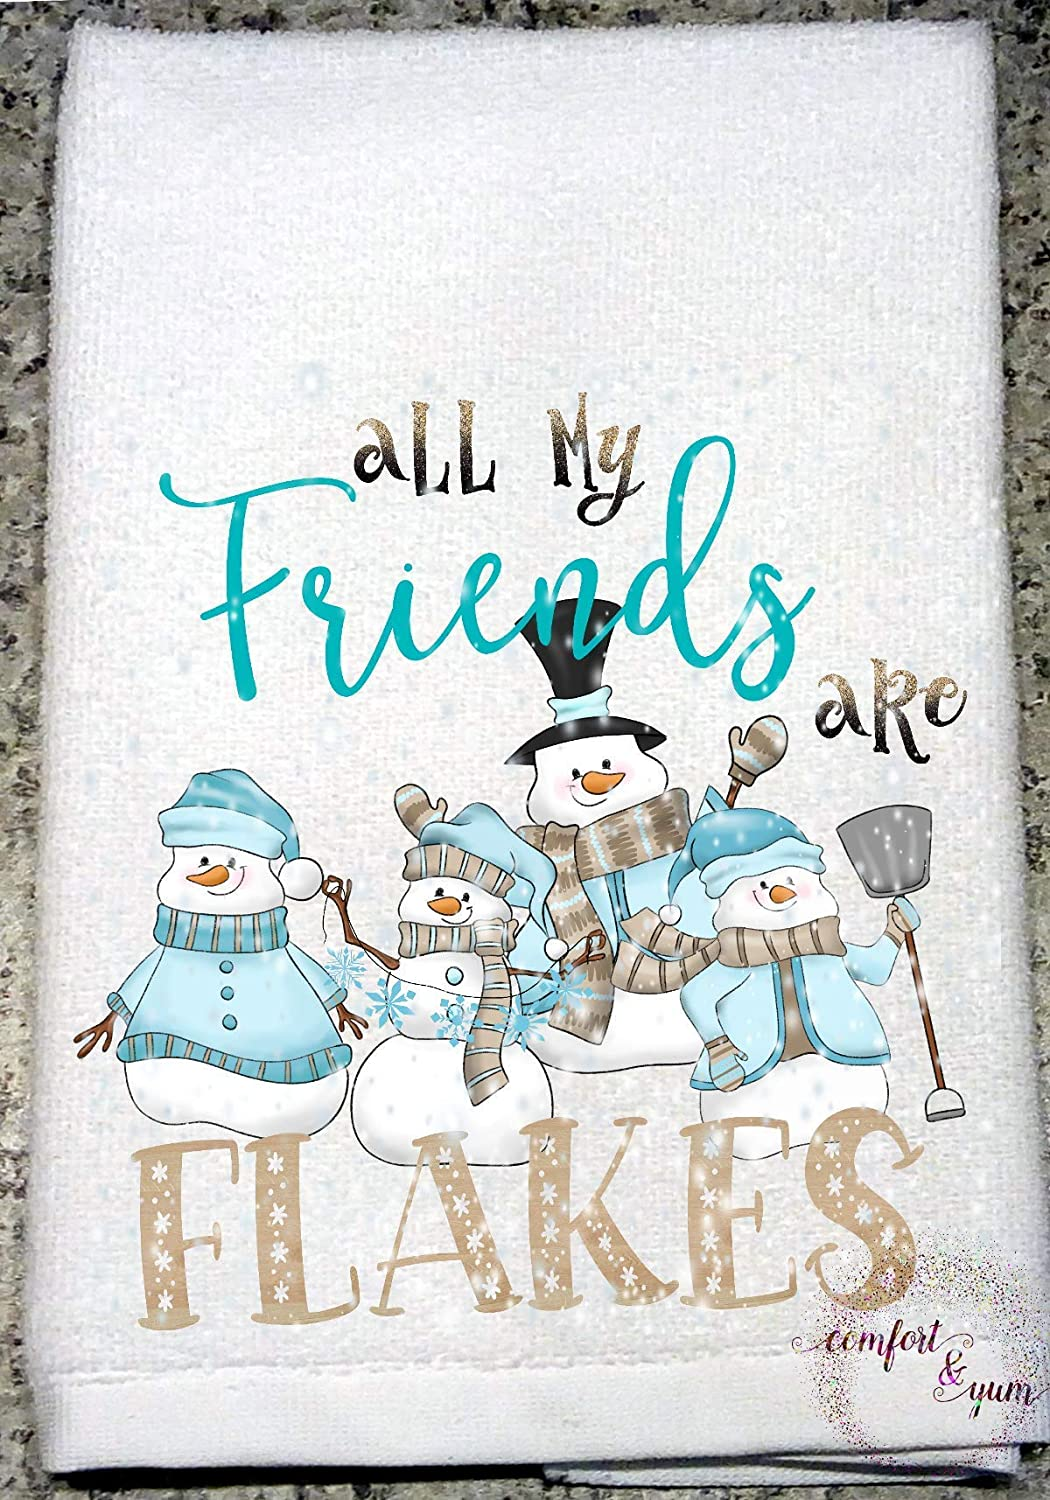 Amazon Com All My Friends Are Flakes Snowman Buddies In Sweaters Hat Scarf Mittens Kitchen Towel Hostess Holiday Gift Handmade